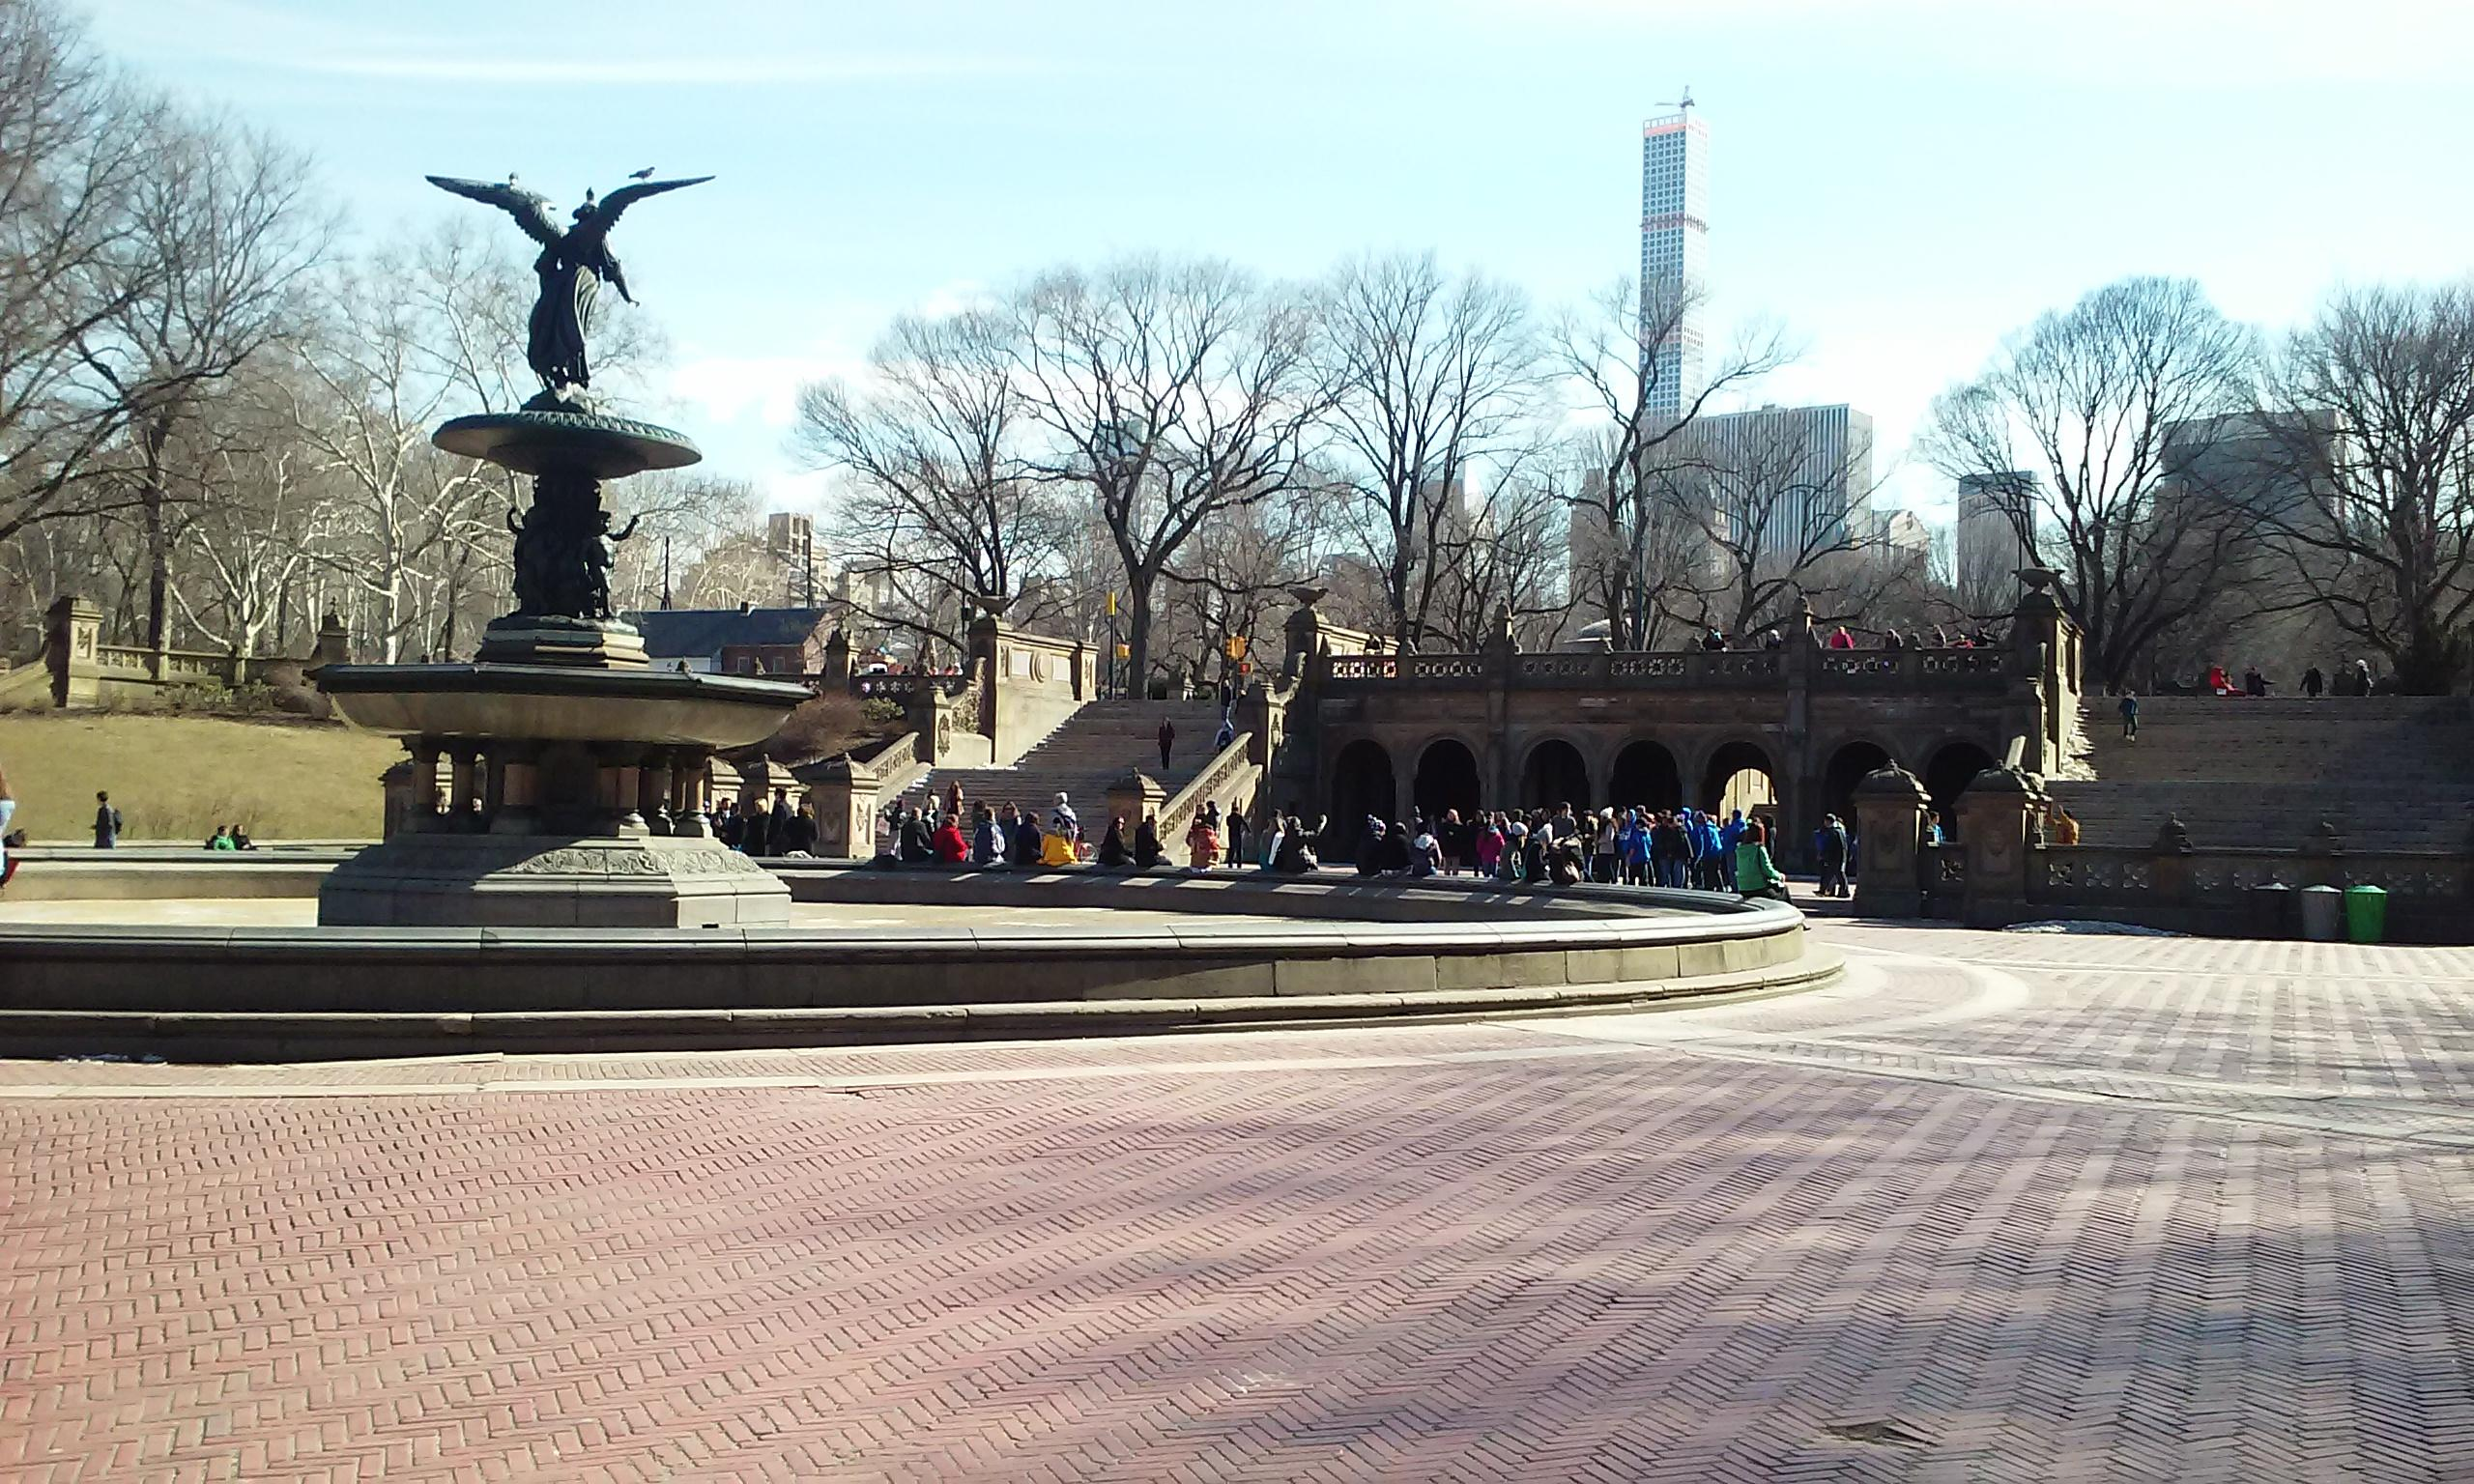 The fountain at Central Park